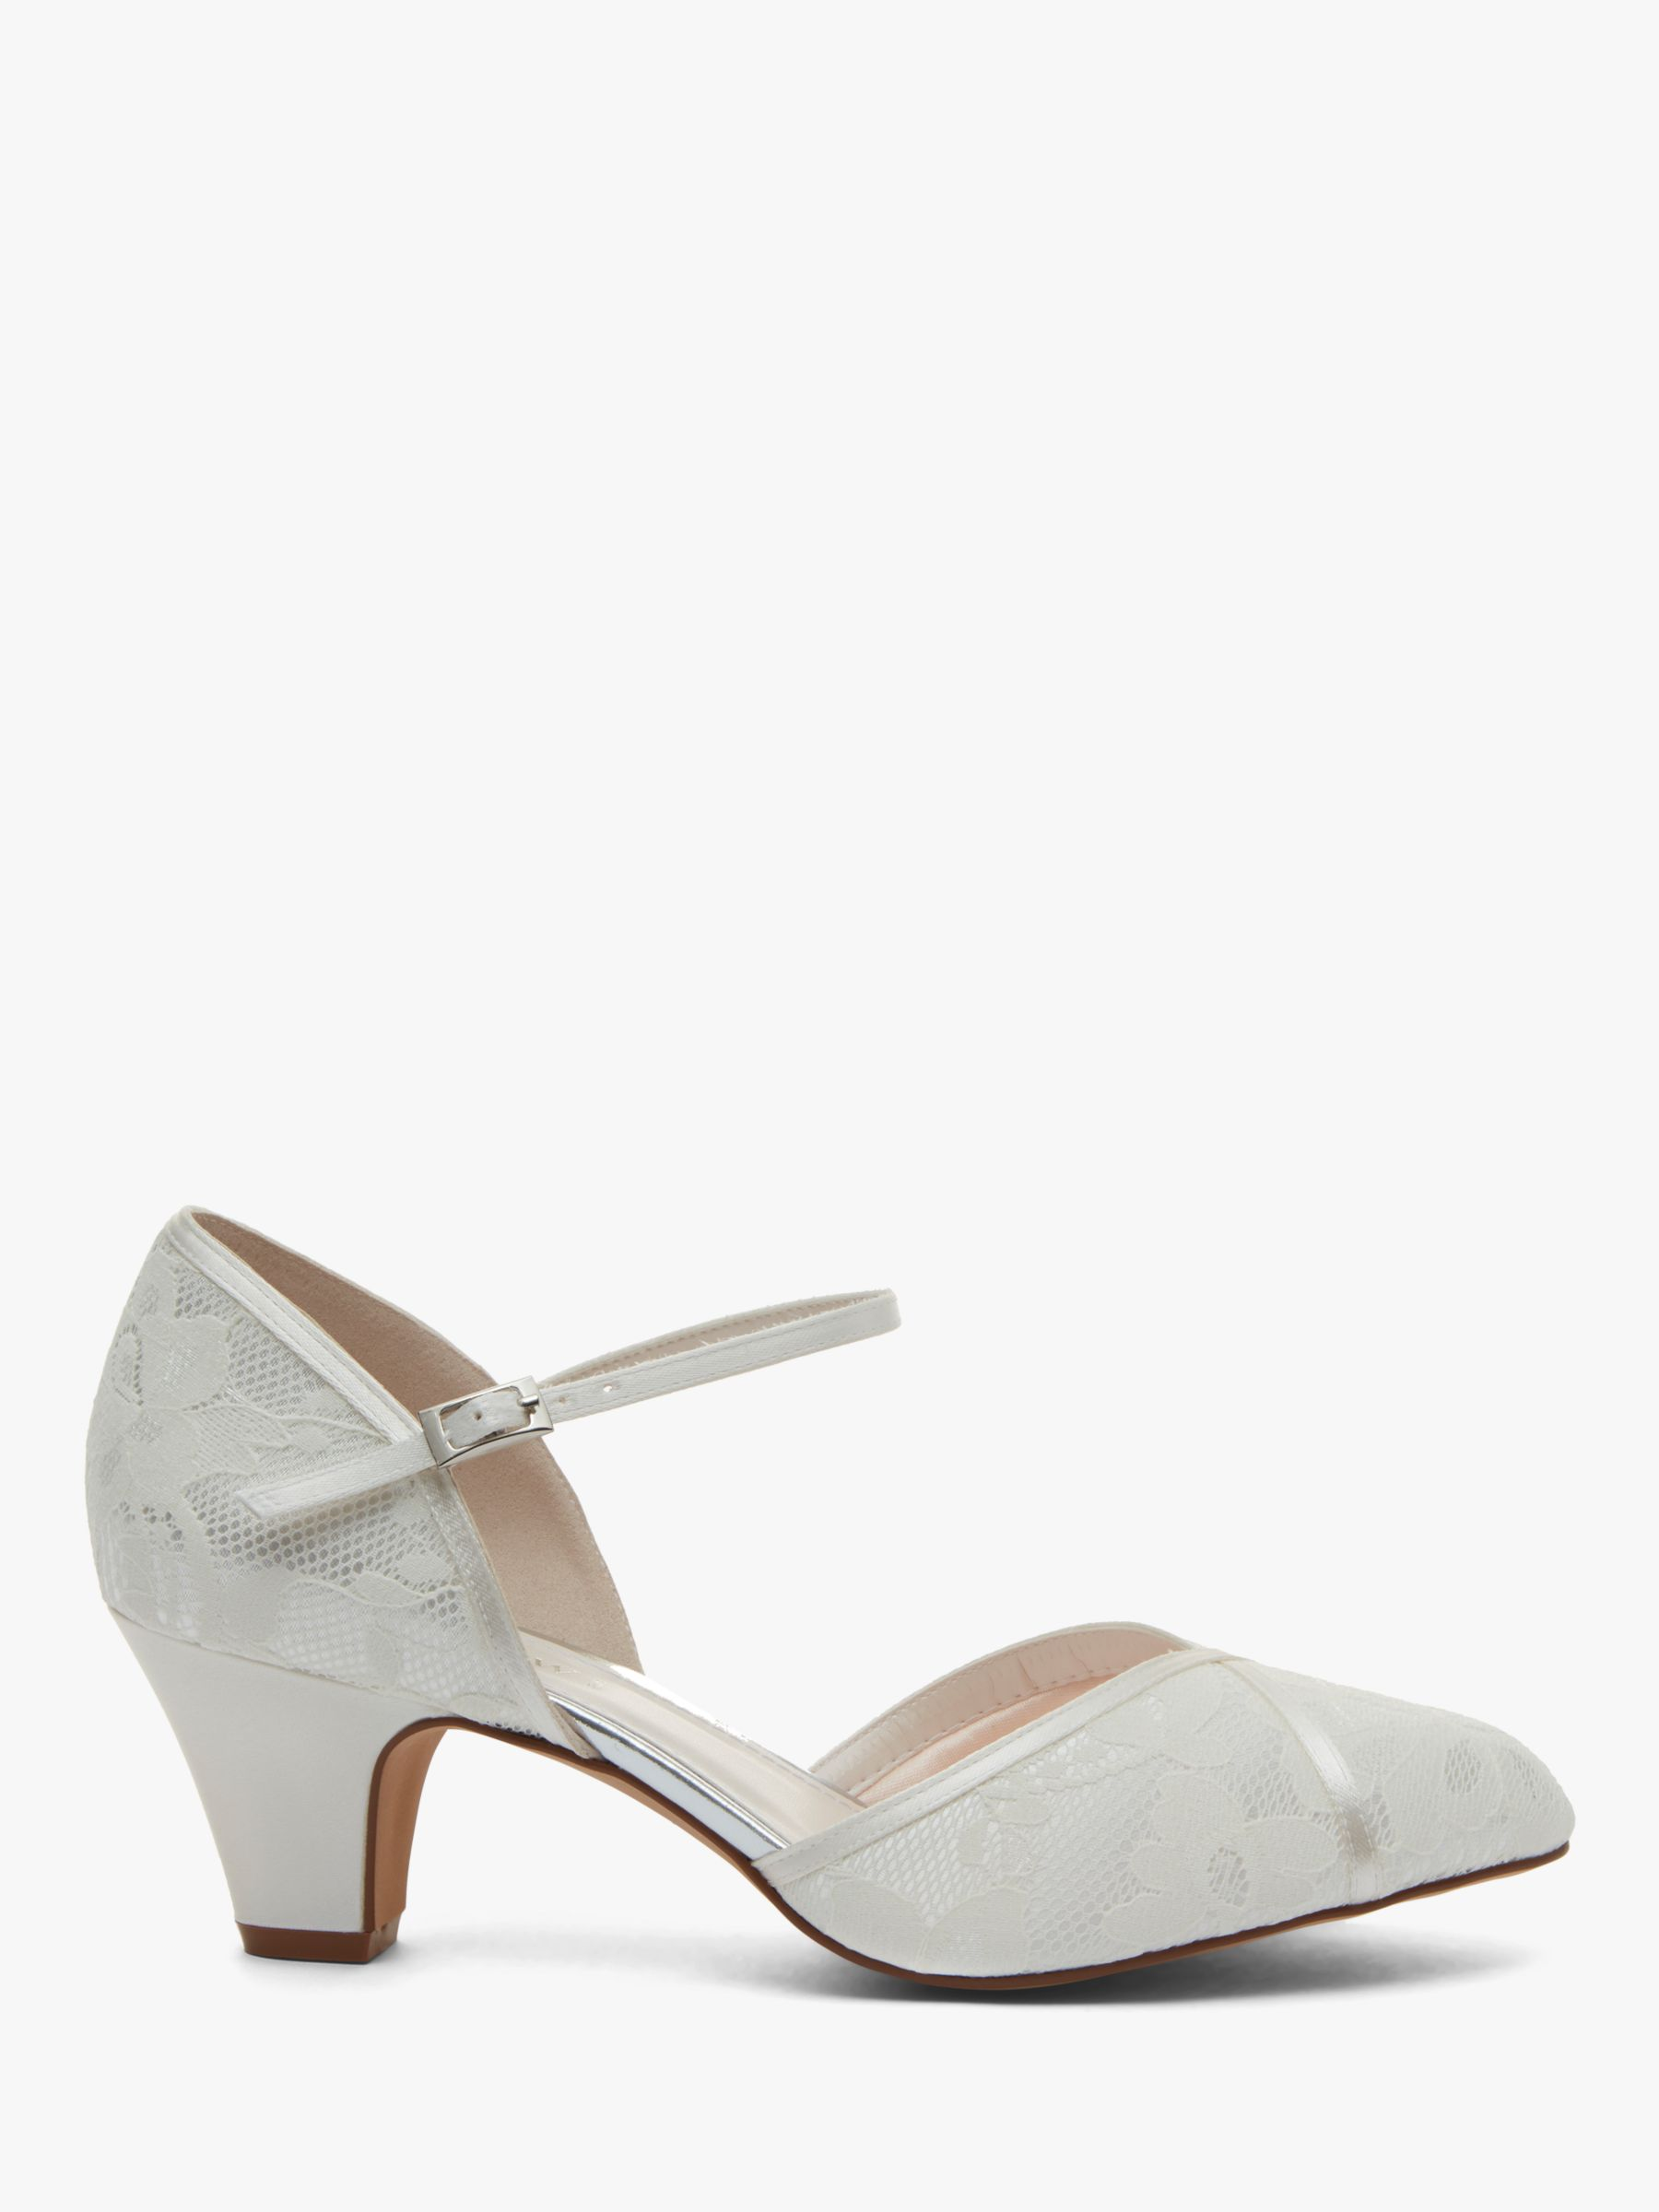 Rainbow Club Rainbow Club Shirley Extra Wide Fit Court Shoes, Ivory Satin